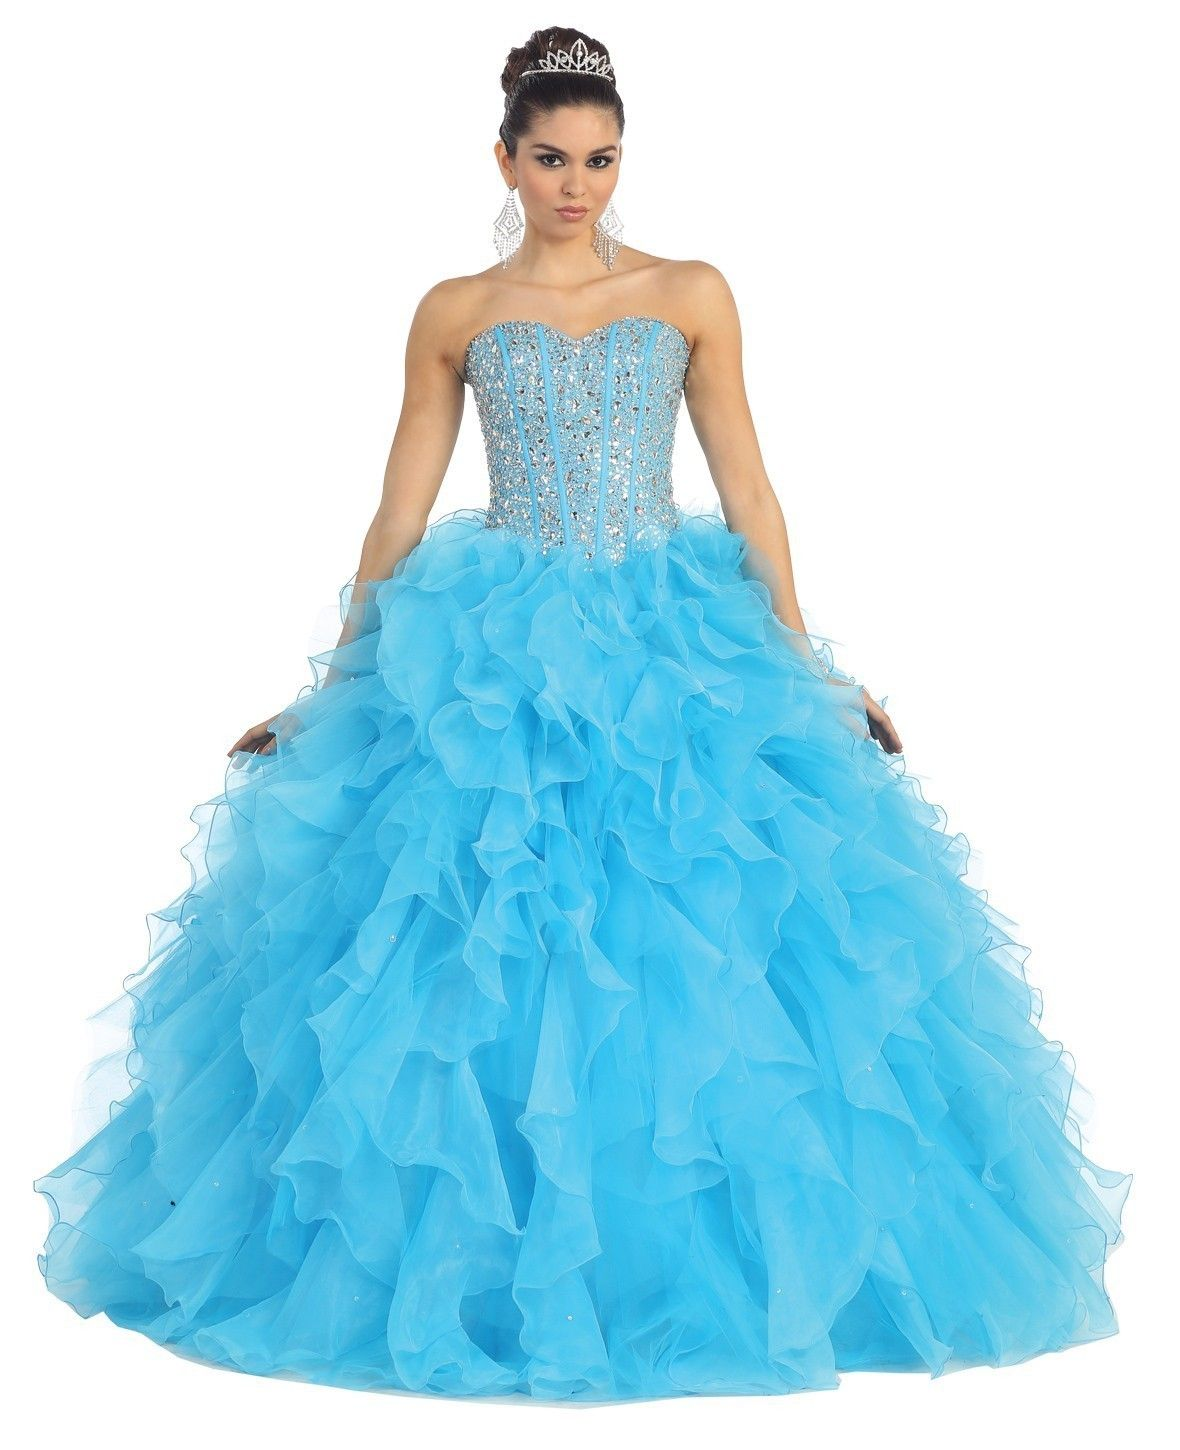 Ball Gown Prom Dresses | Dressed Up Girl